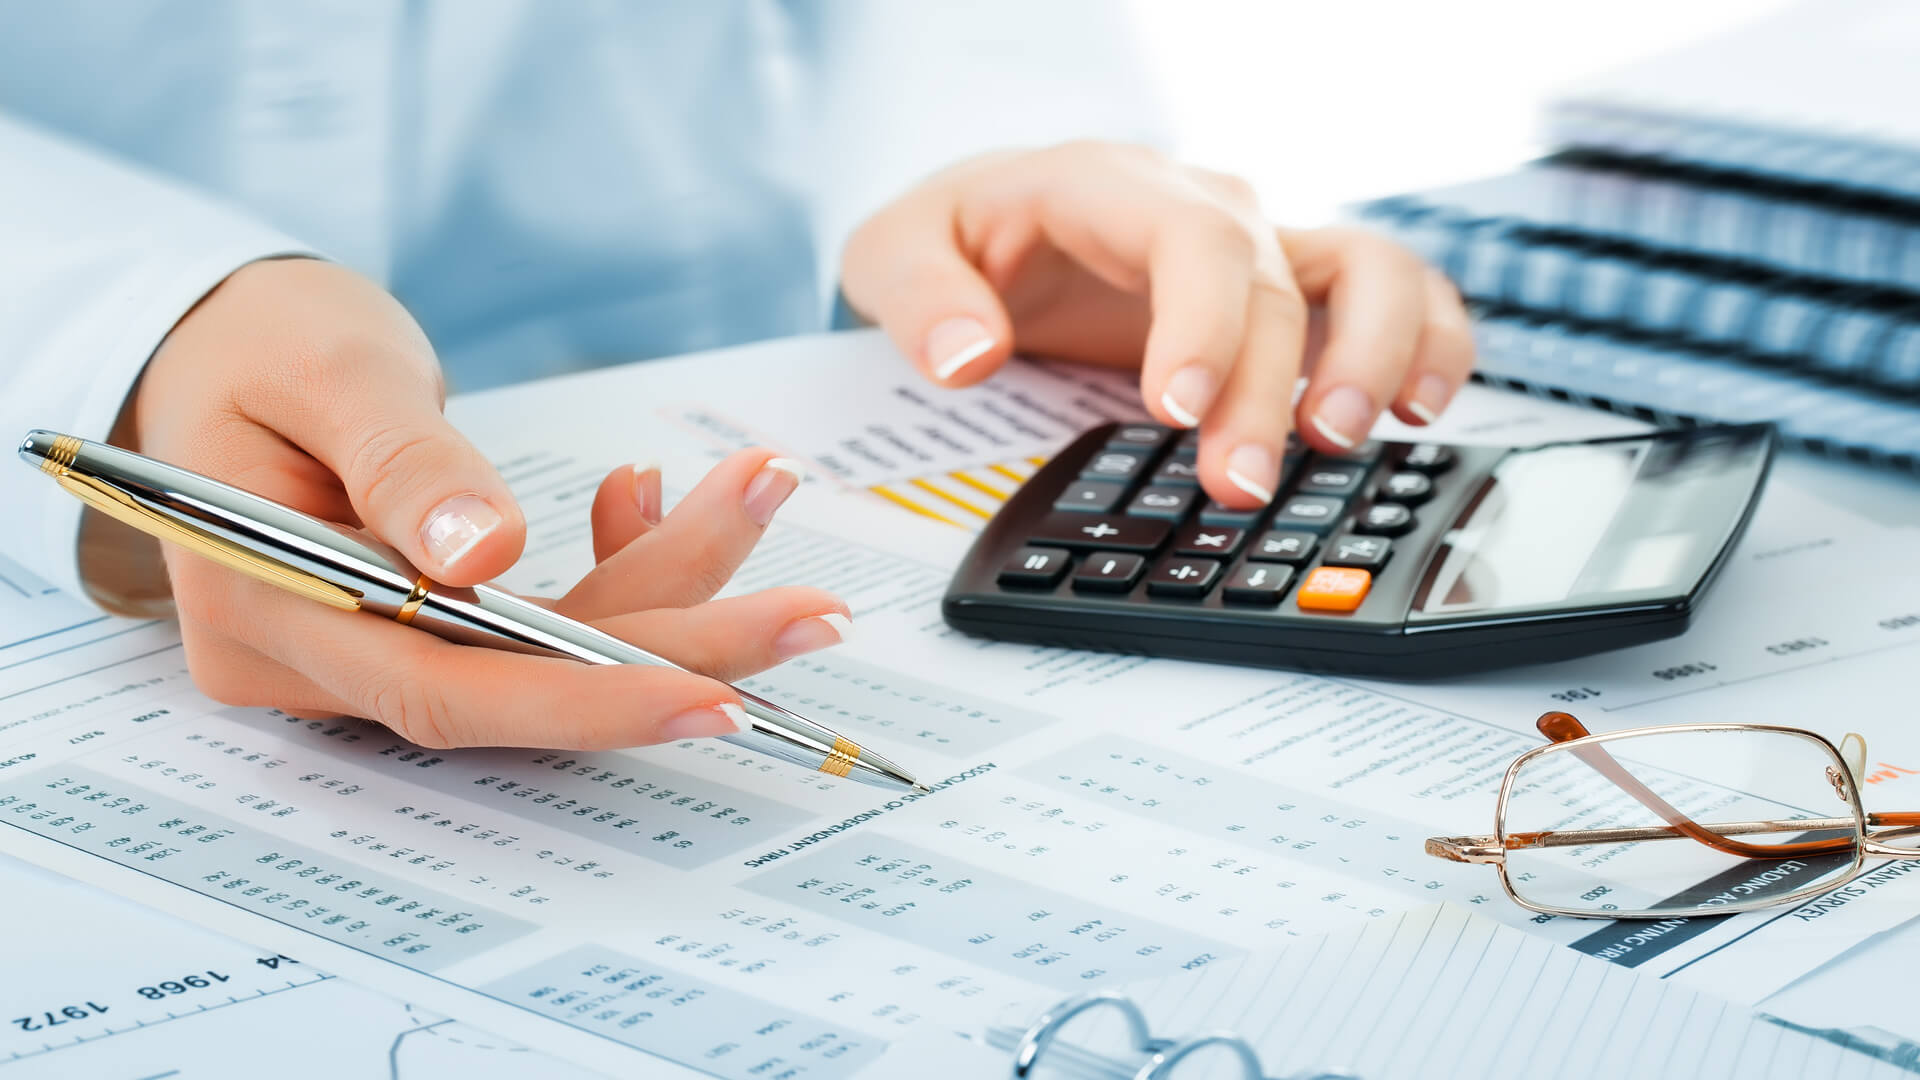 Financial report accounting business